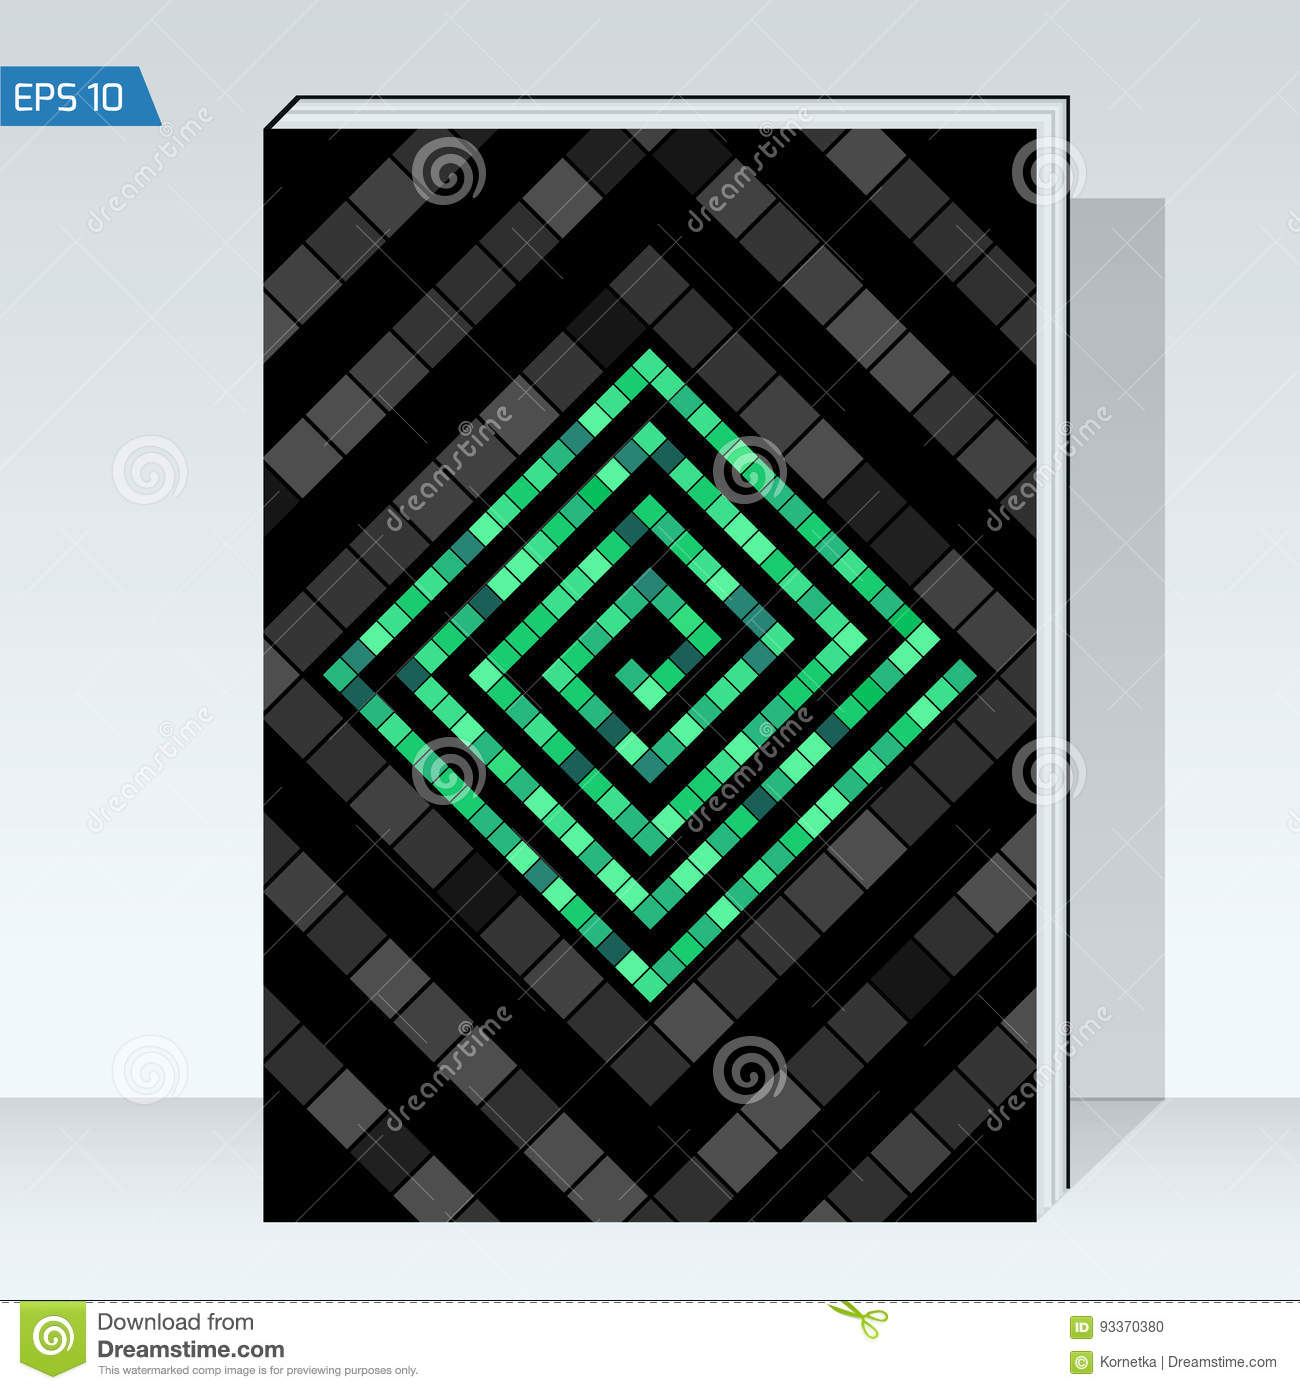 Black geometry design Cover brochure. color maze of cubes, geometry backgrounds.